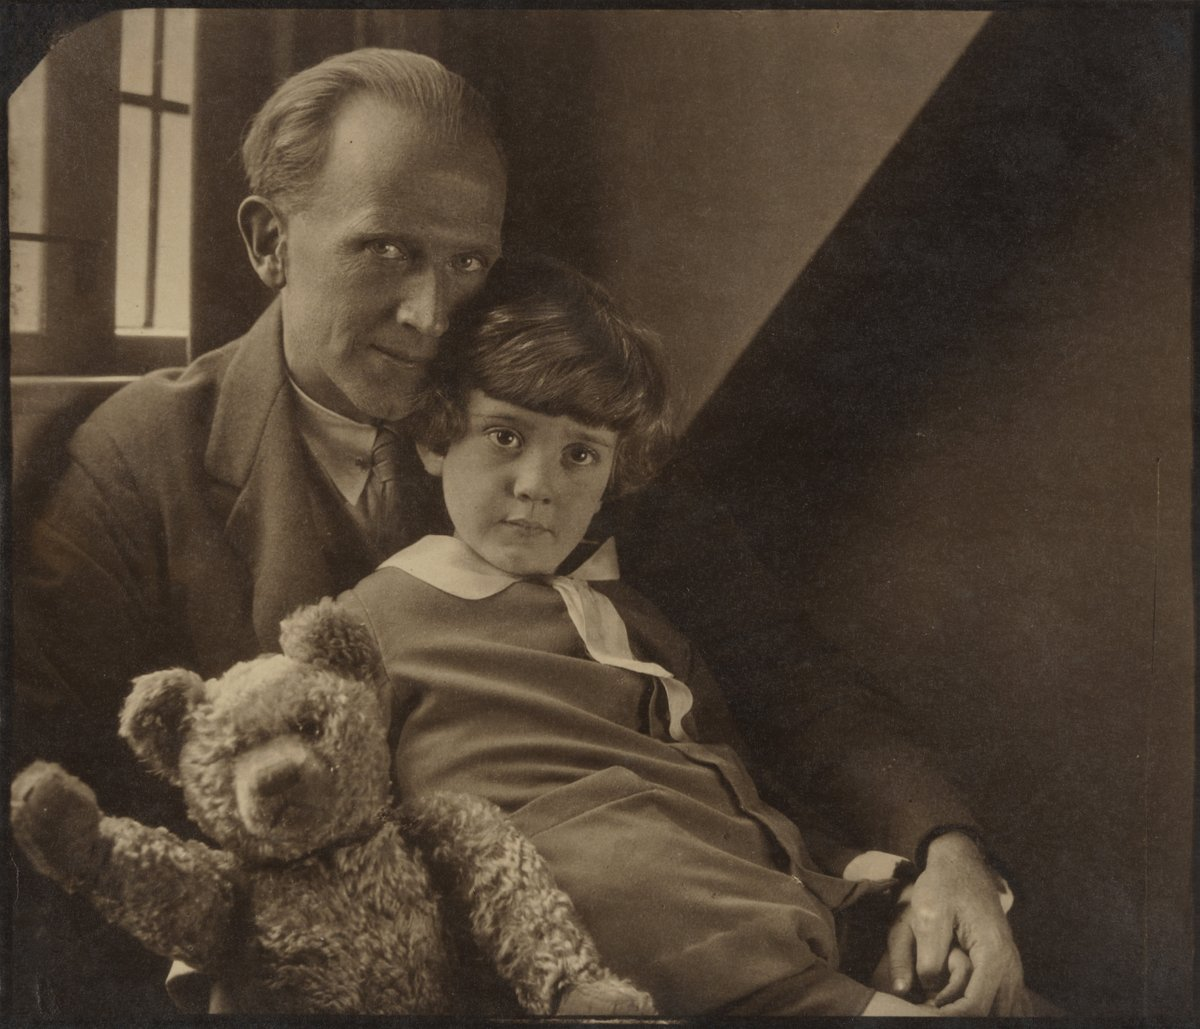 Happy #winnethepoohday! Writer A.A Milne was born #onthisday in 1882. In this intimate portrait, photographed in the year that the children's classic was first published, Milne is captured with his son Christopher Robin and the original Pooh Bear.   📷 by Howard Coster, 1926